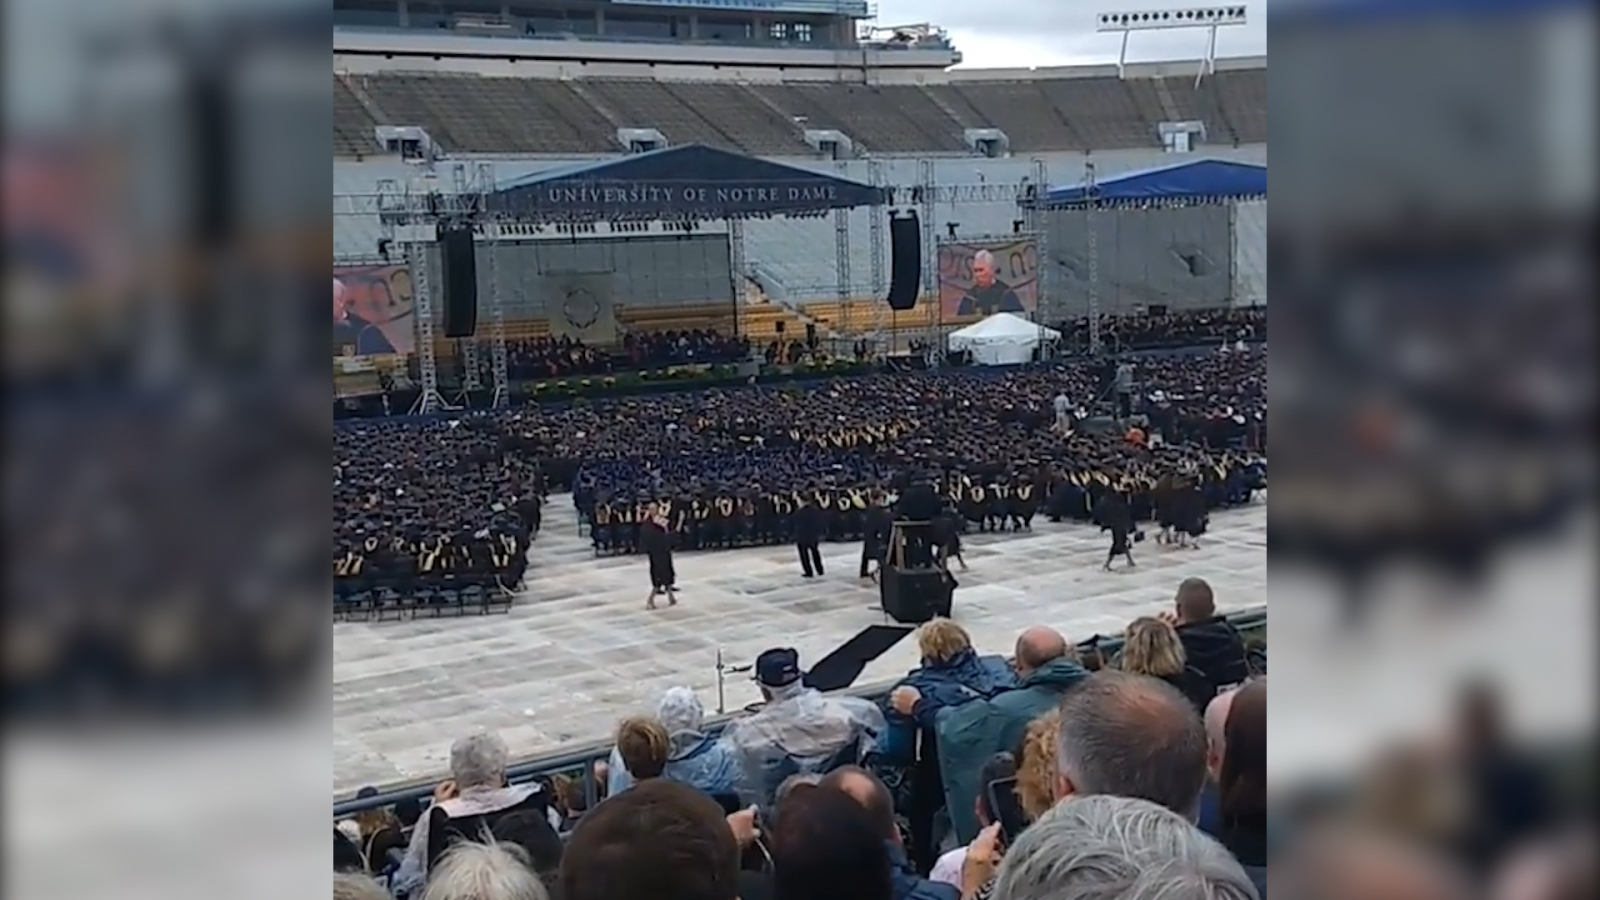 notre-dame-students-walk-out-of-mike-pence-commencement-speech